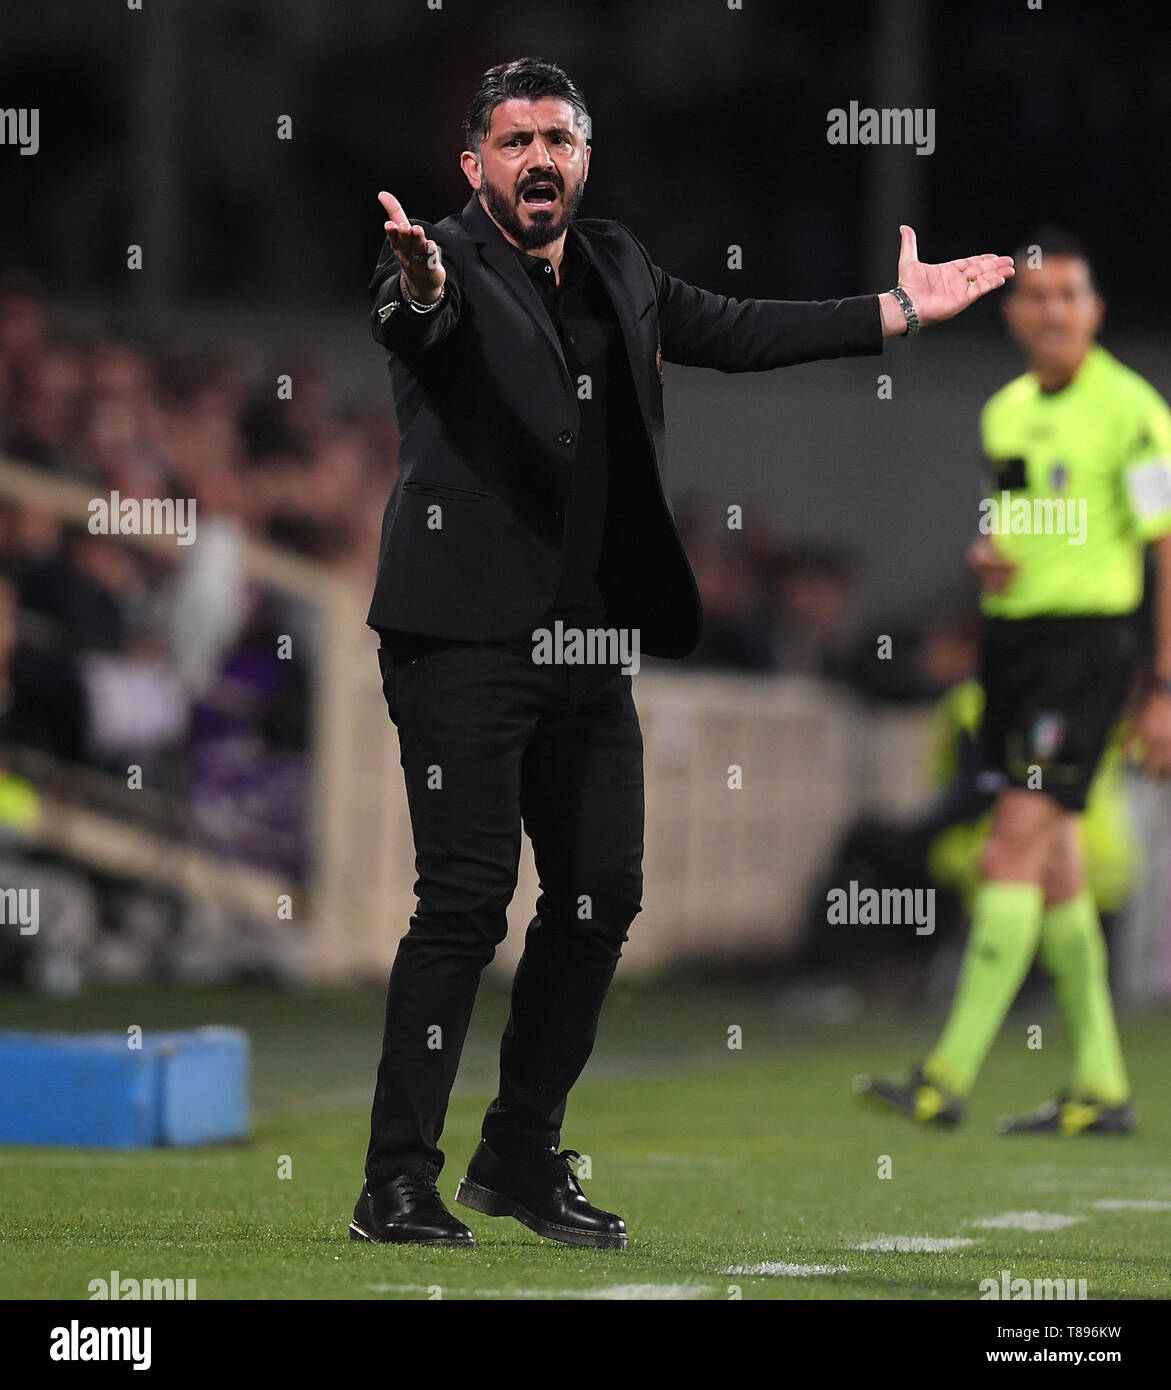 Florence Italy 11th May 2019 Ac Milan S Head Coach Gennaro Gattuso Reacts During A Serie A Soccer Match Between Fiorentina And Ac Milan In Florence Italy May 11 2019 Fiorentina Lost 0 1